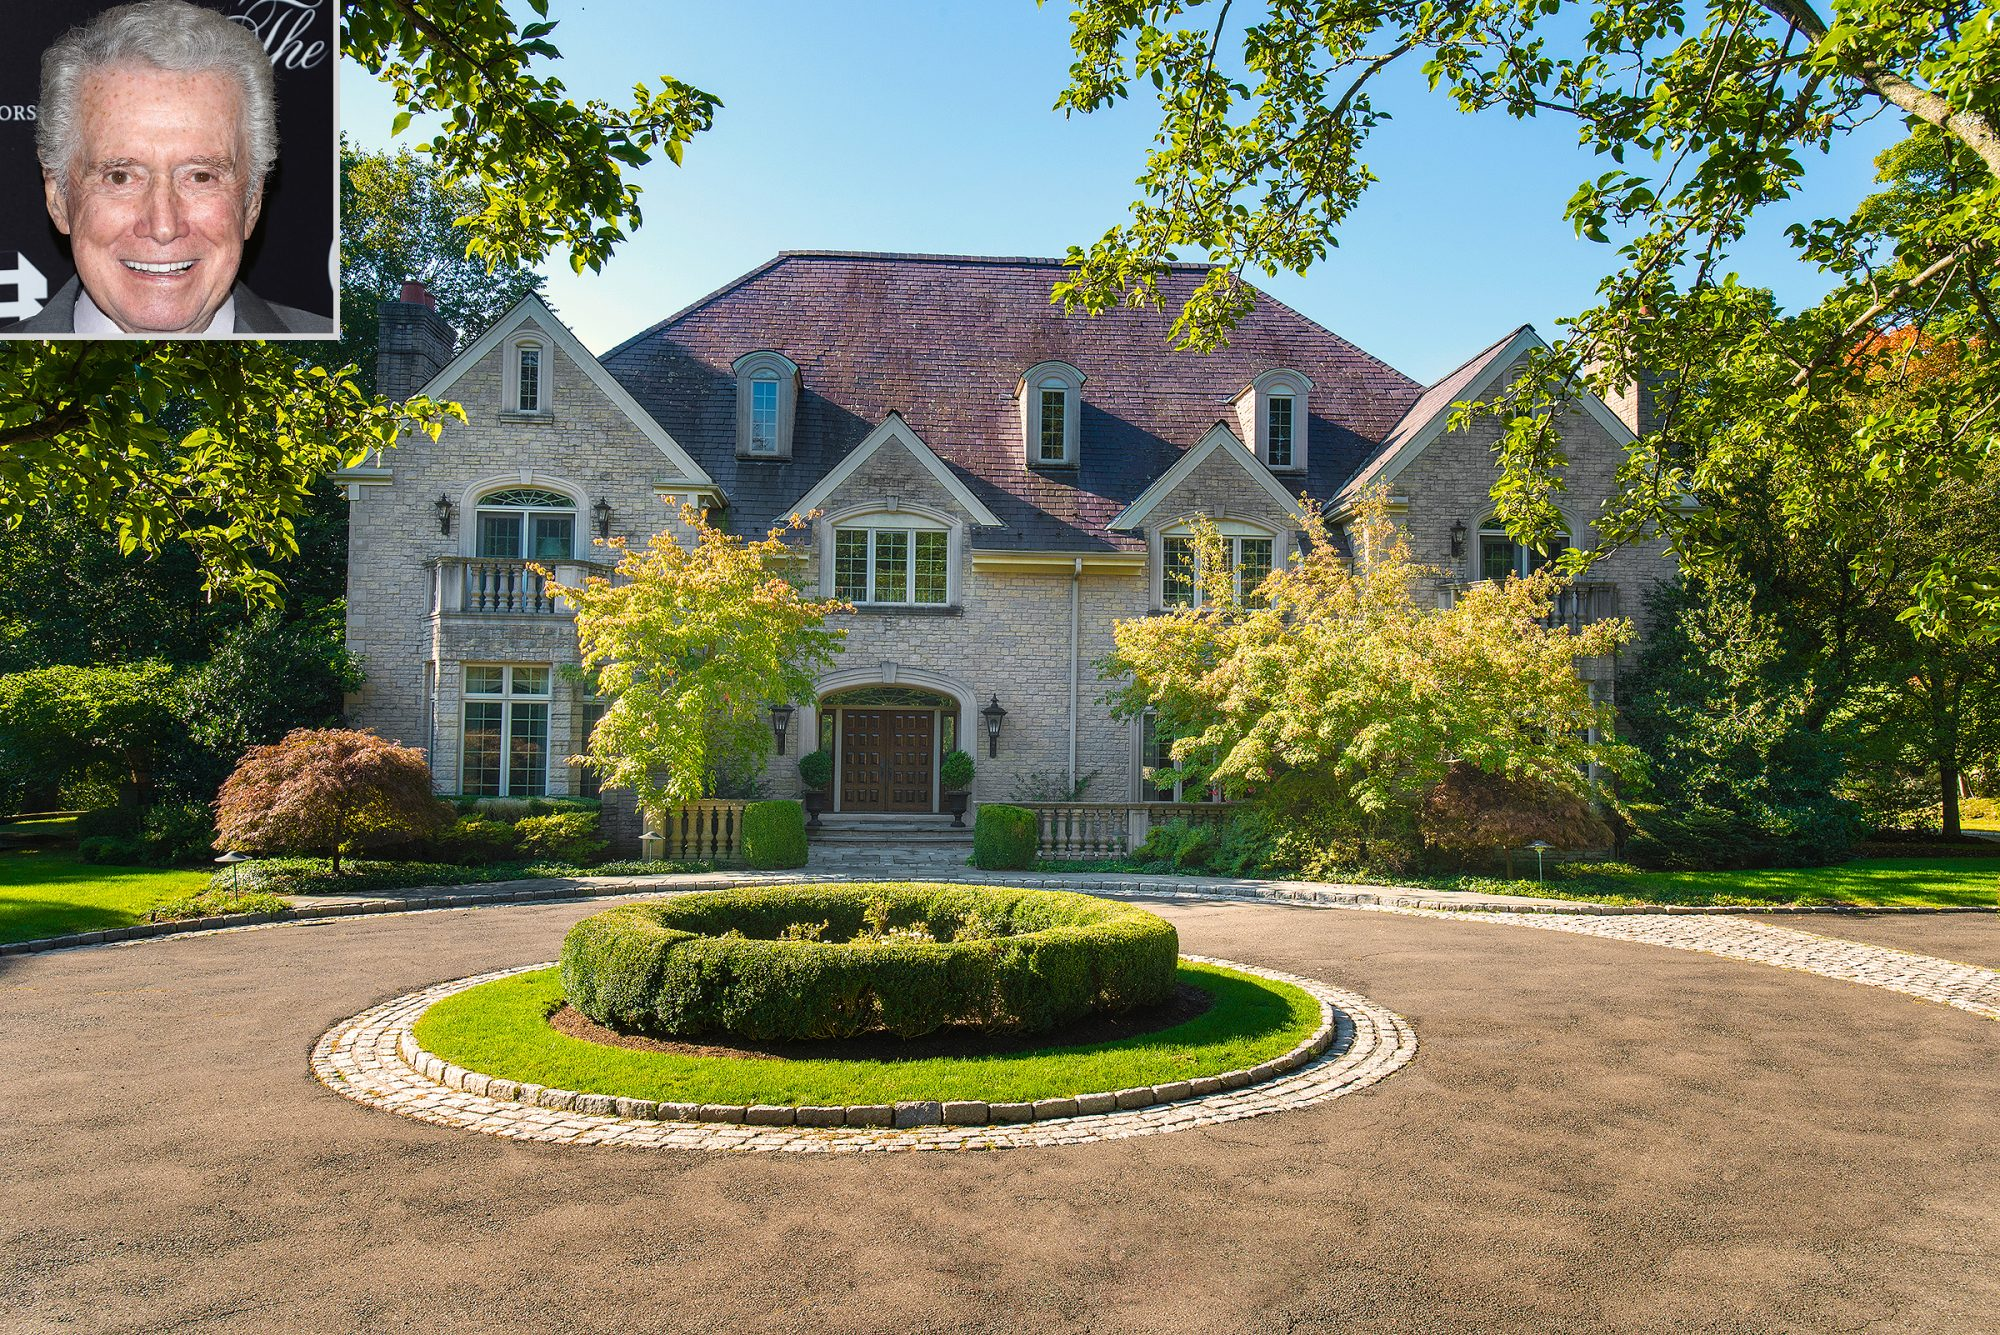 Regis Philbin lists home